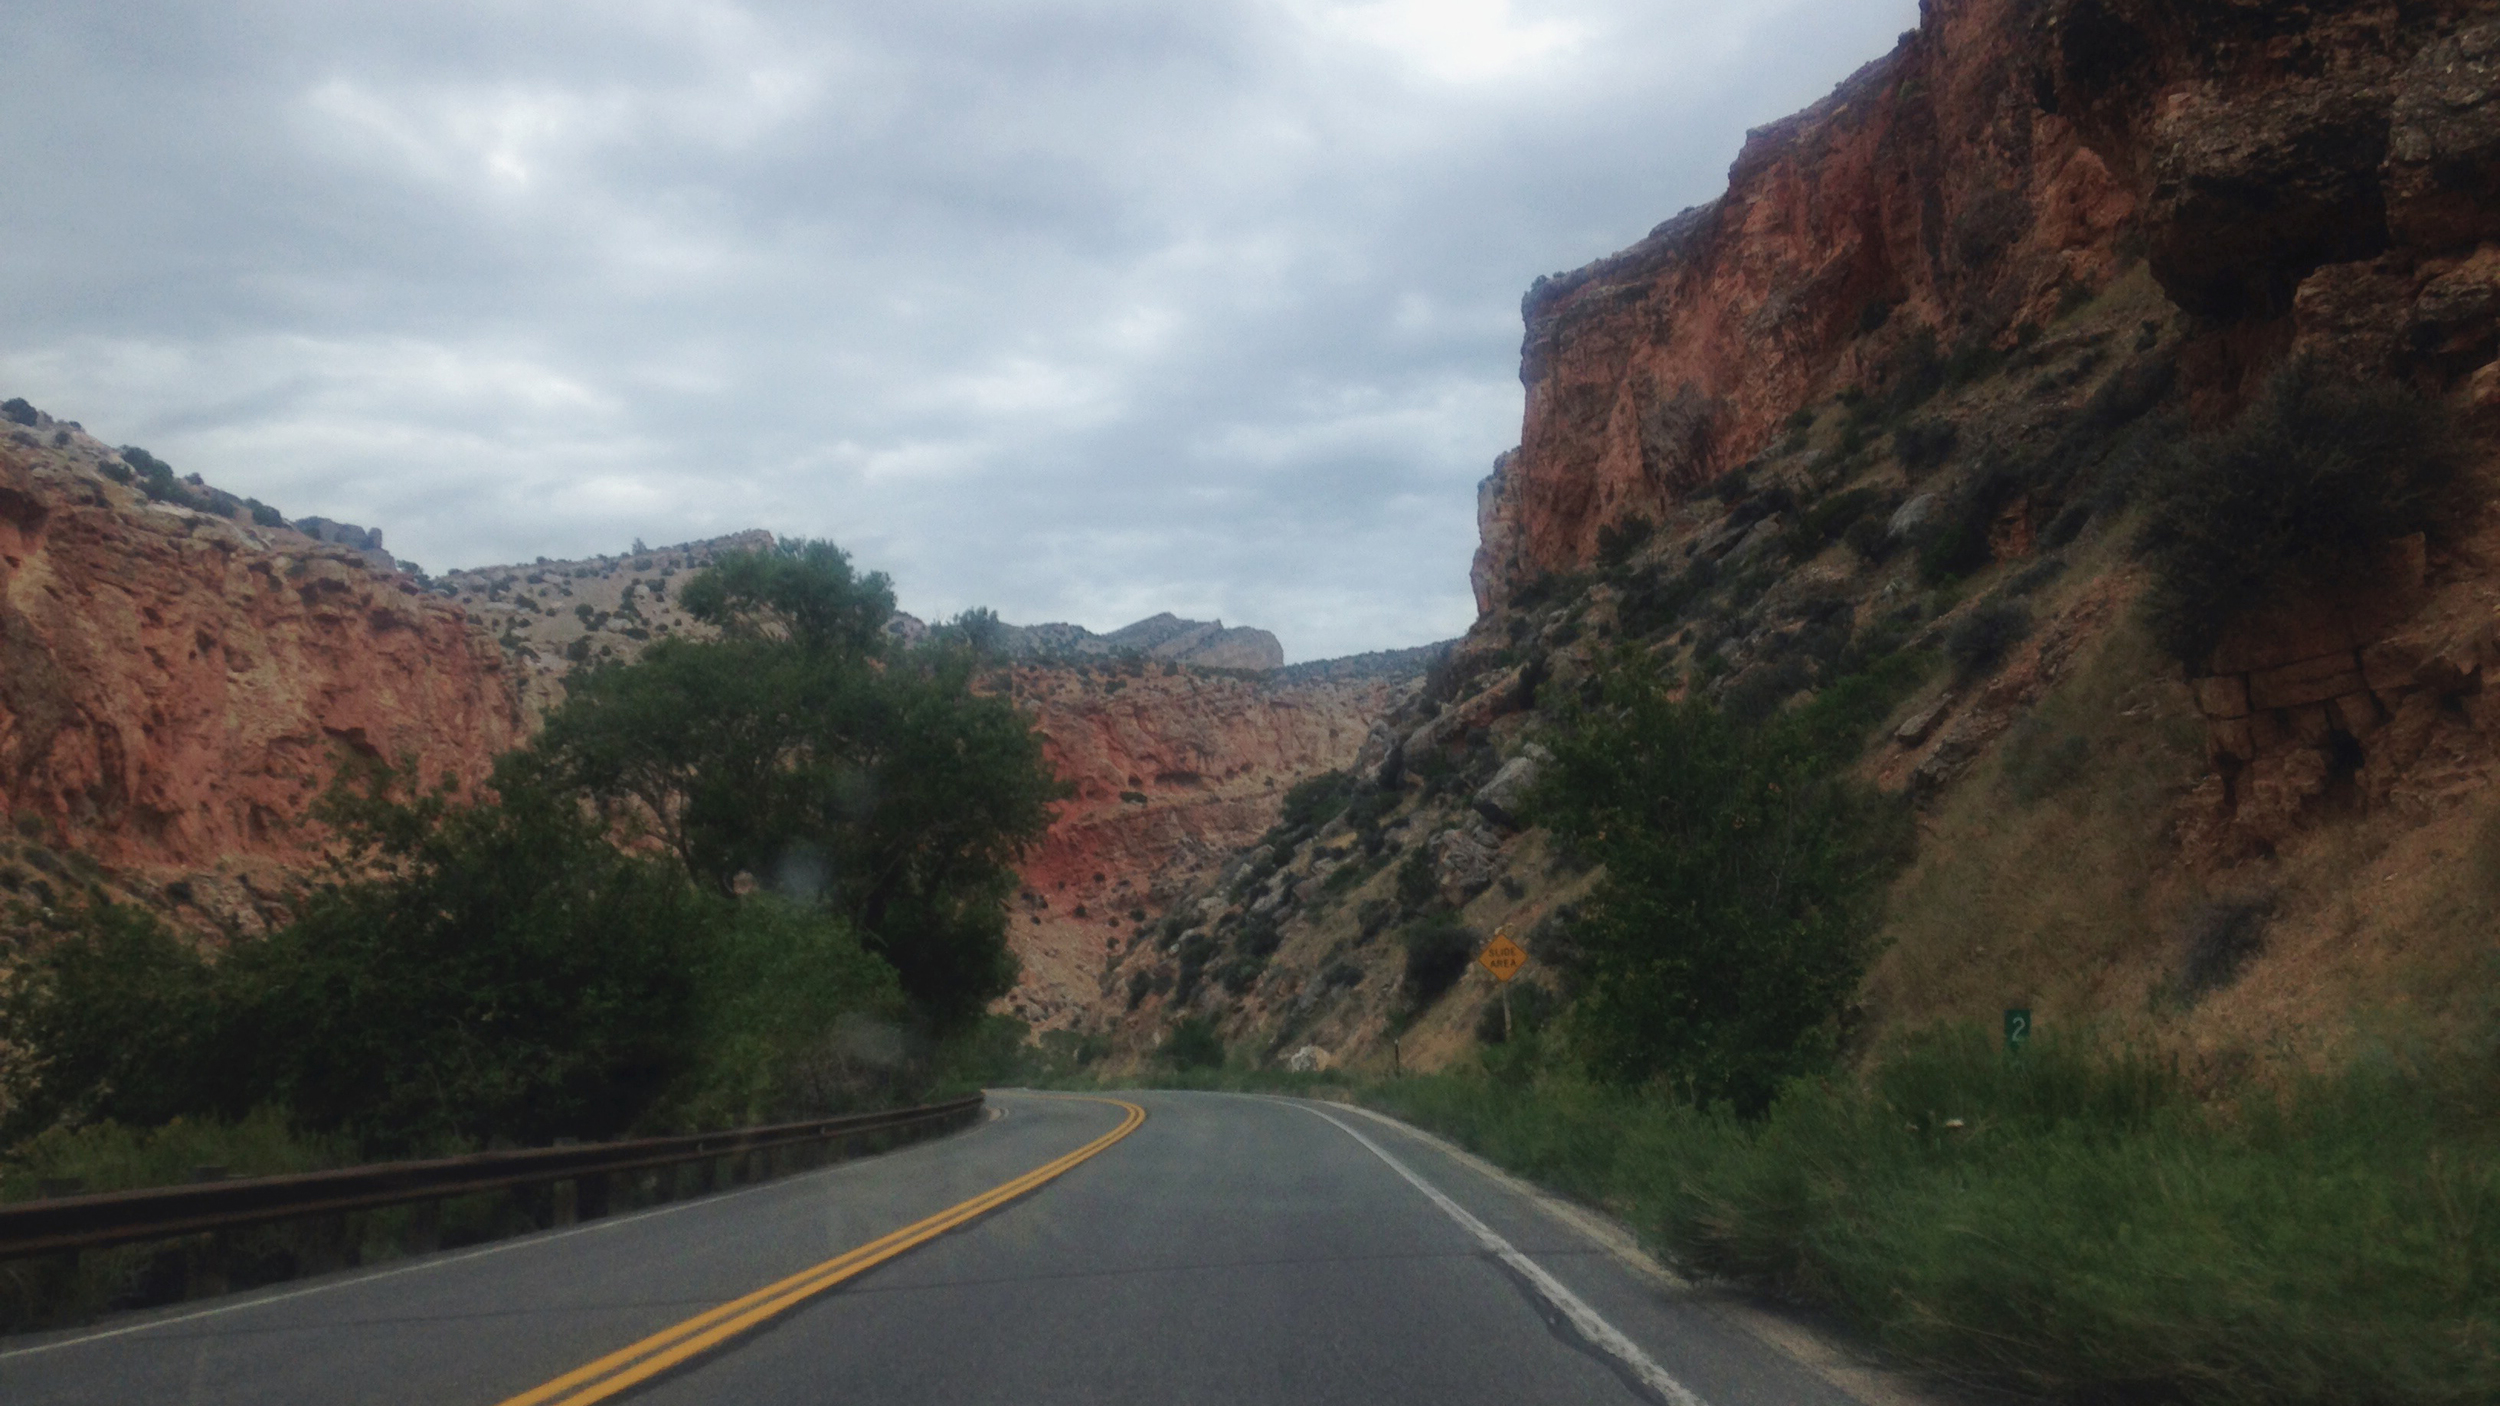 The entrance to Bighorn National Forrest